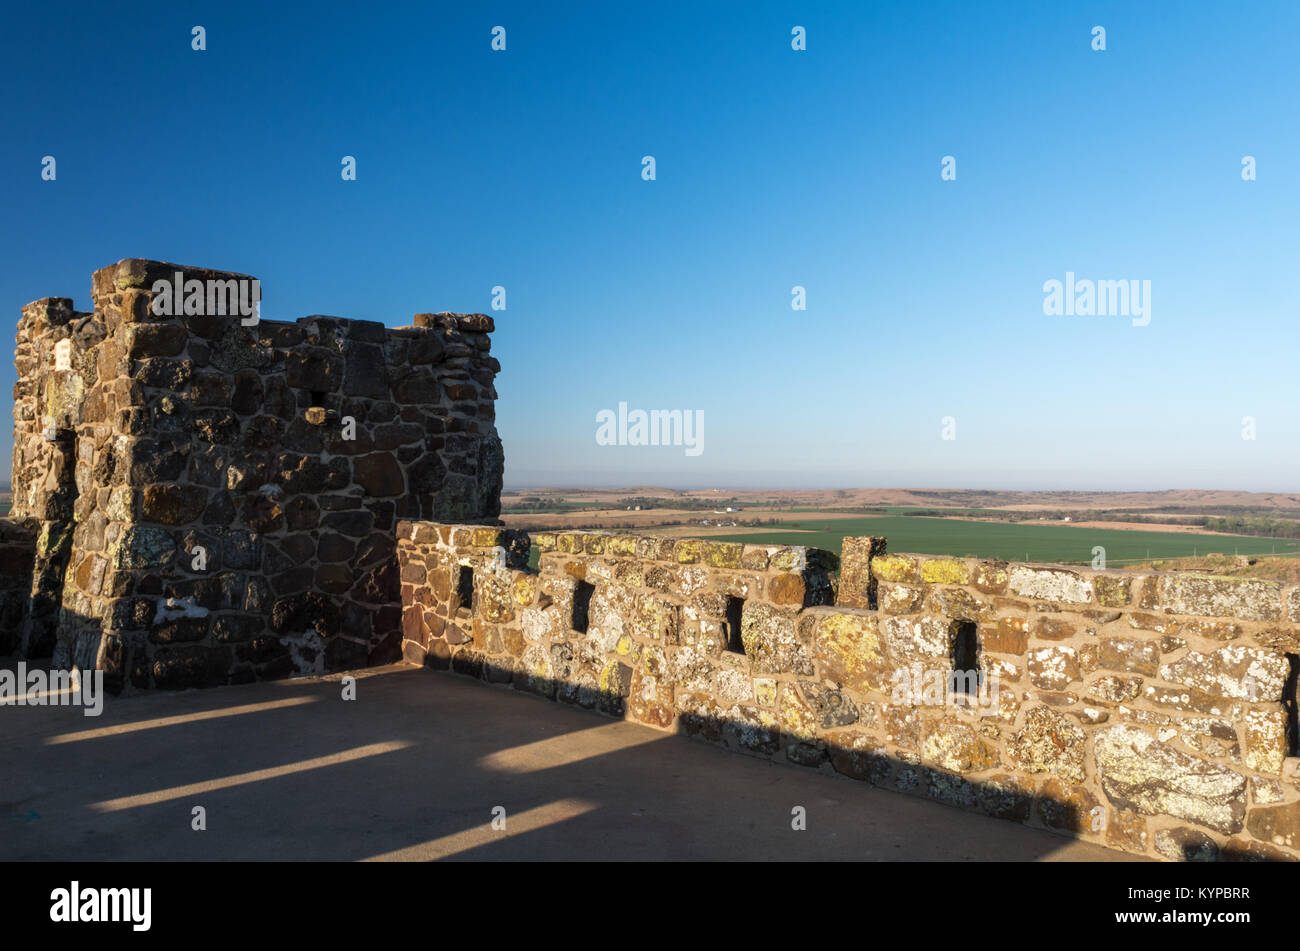 Dawn's shadow keep across the roof of a castle in Kanas. - Stock Image